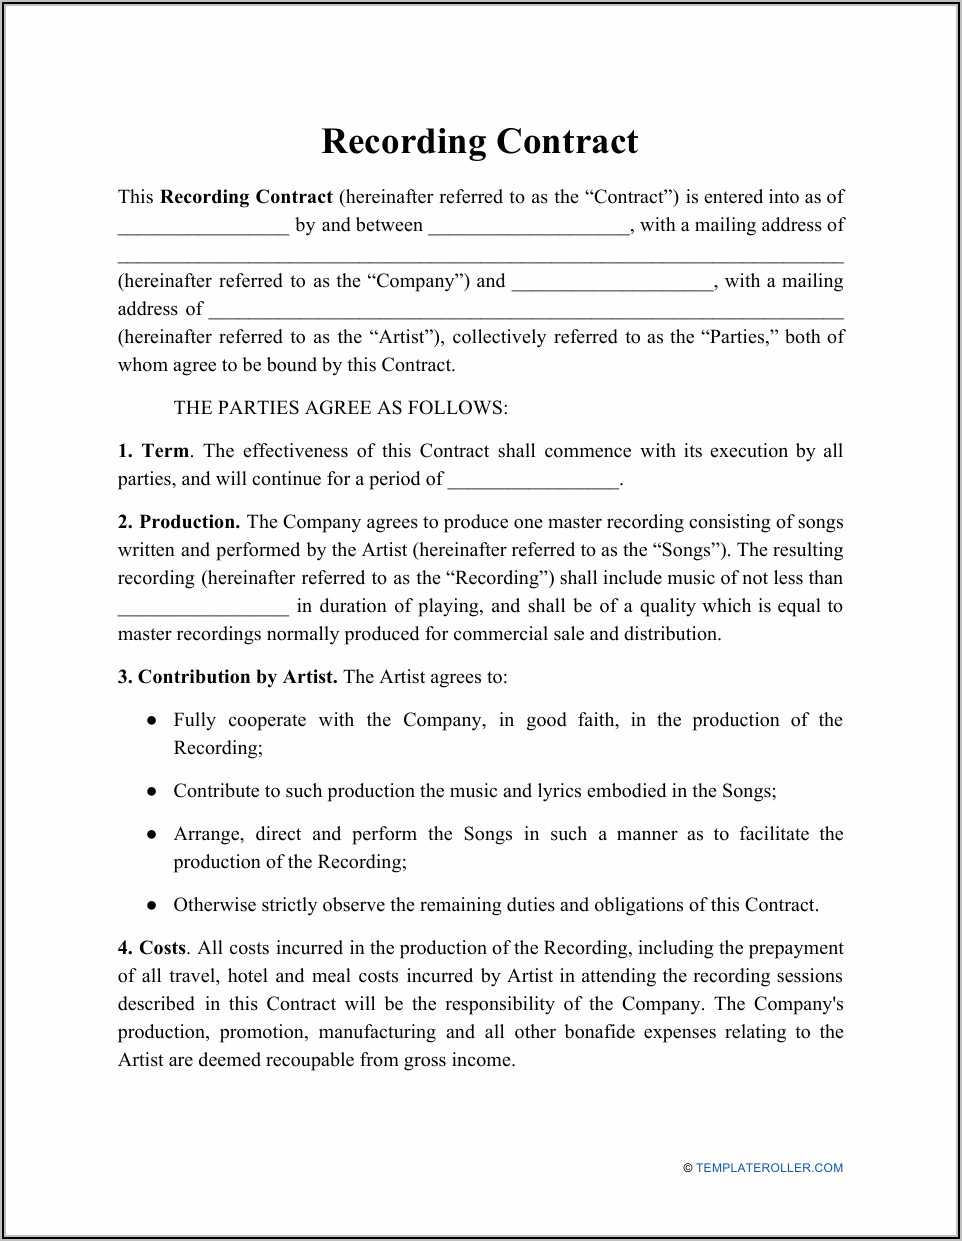 Royalty Agreement Template South Africa